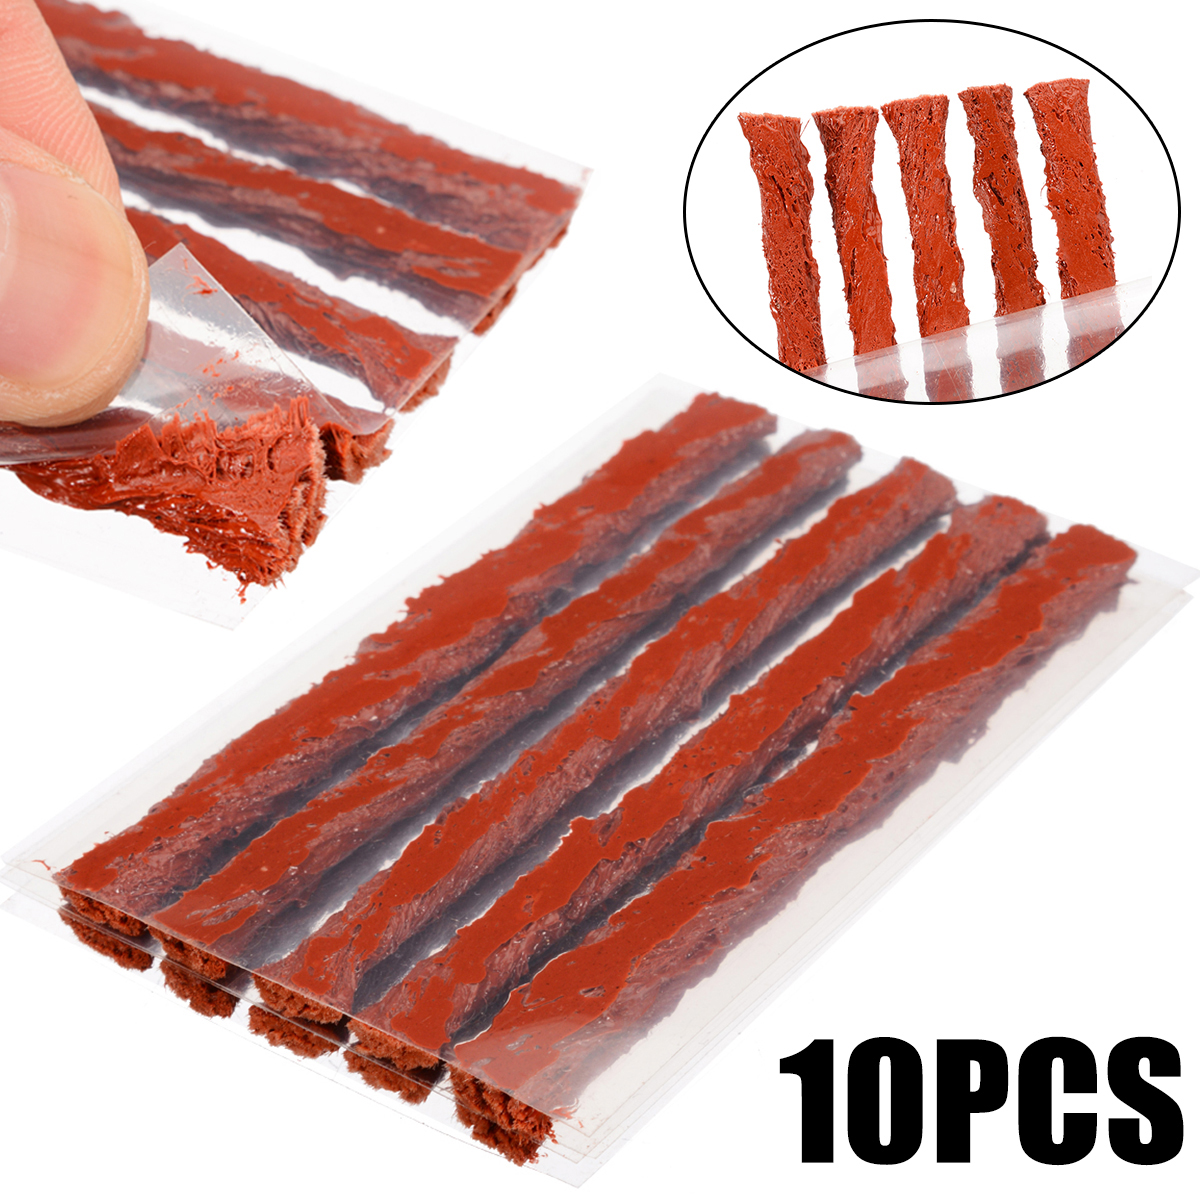 10Pcs/set Tubeless Tire Repair Strips Glue For Tyre Puncture Emergency Car Motorcycle Bike Tyre Repairing Rubber Strips